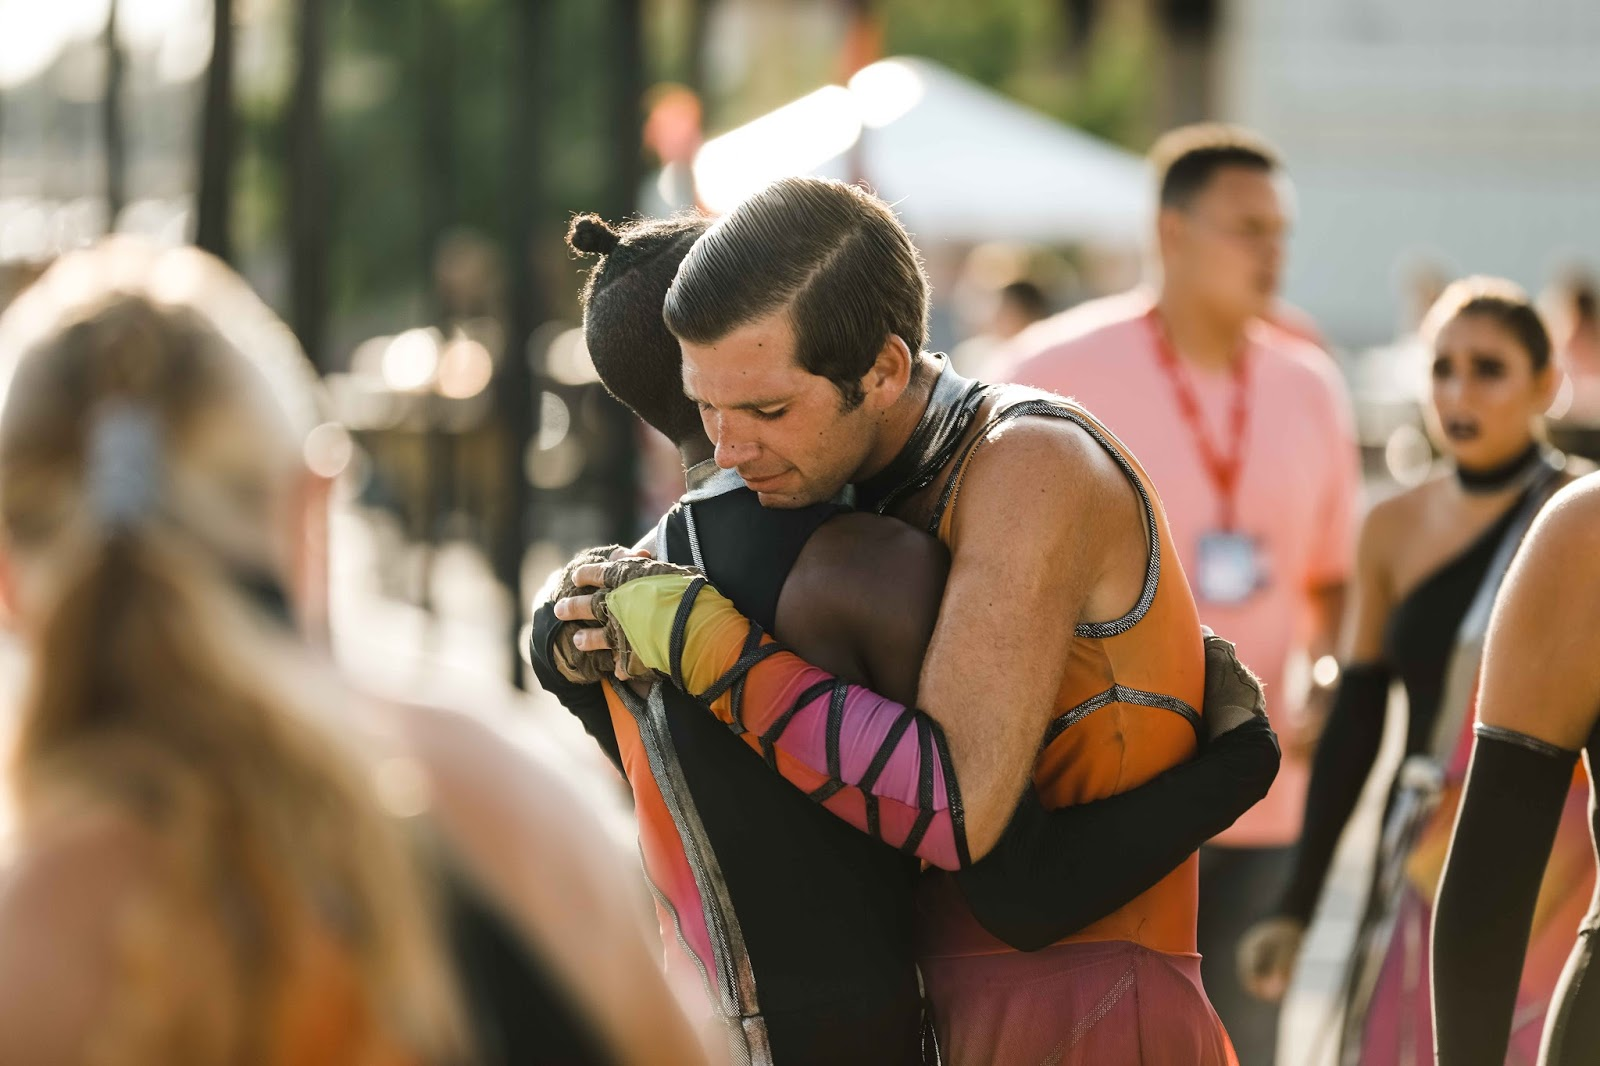 Members of the Crossmen hug as they say goodbye after their 2017 Finals performance